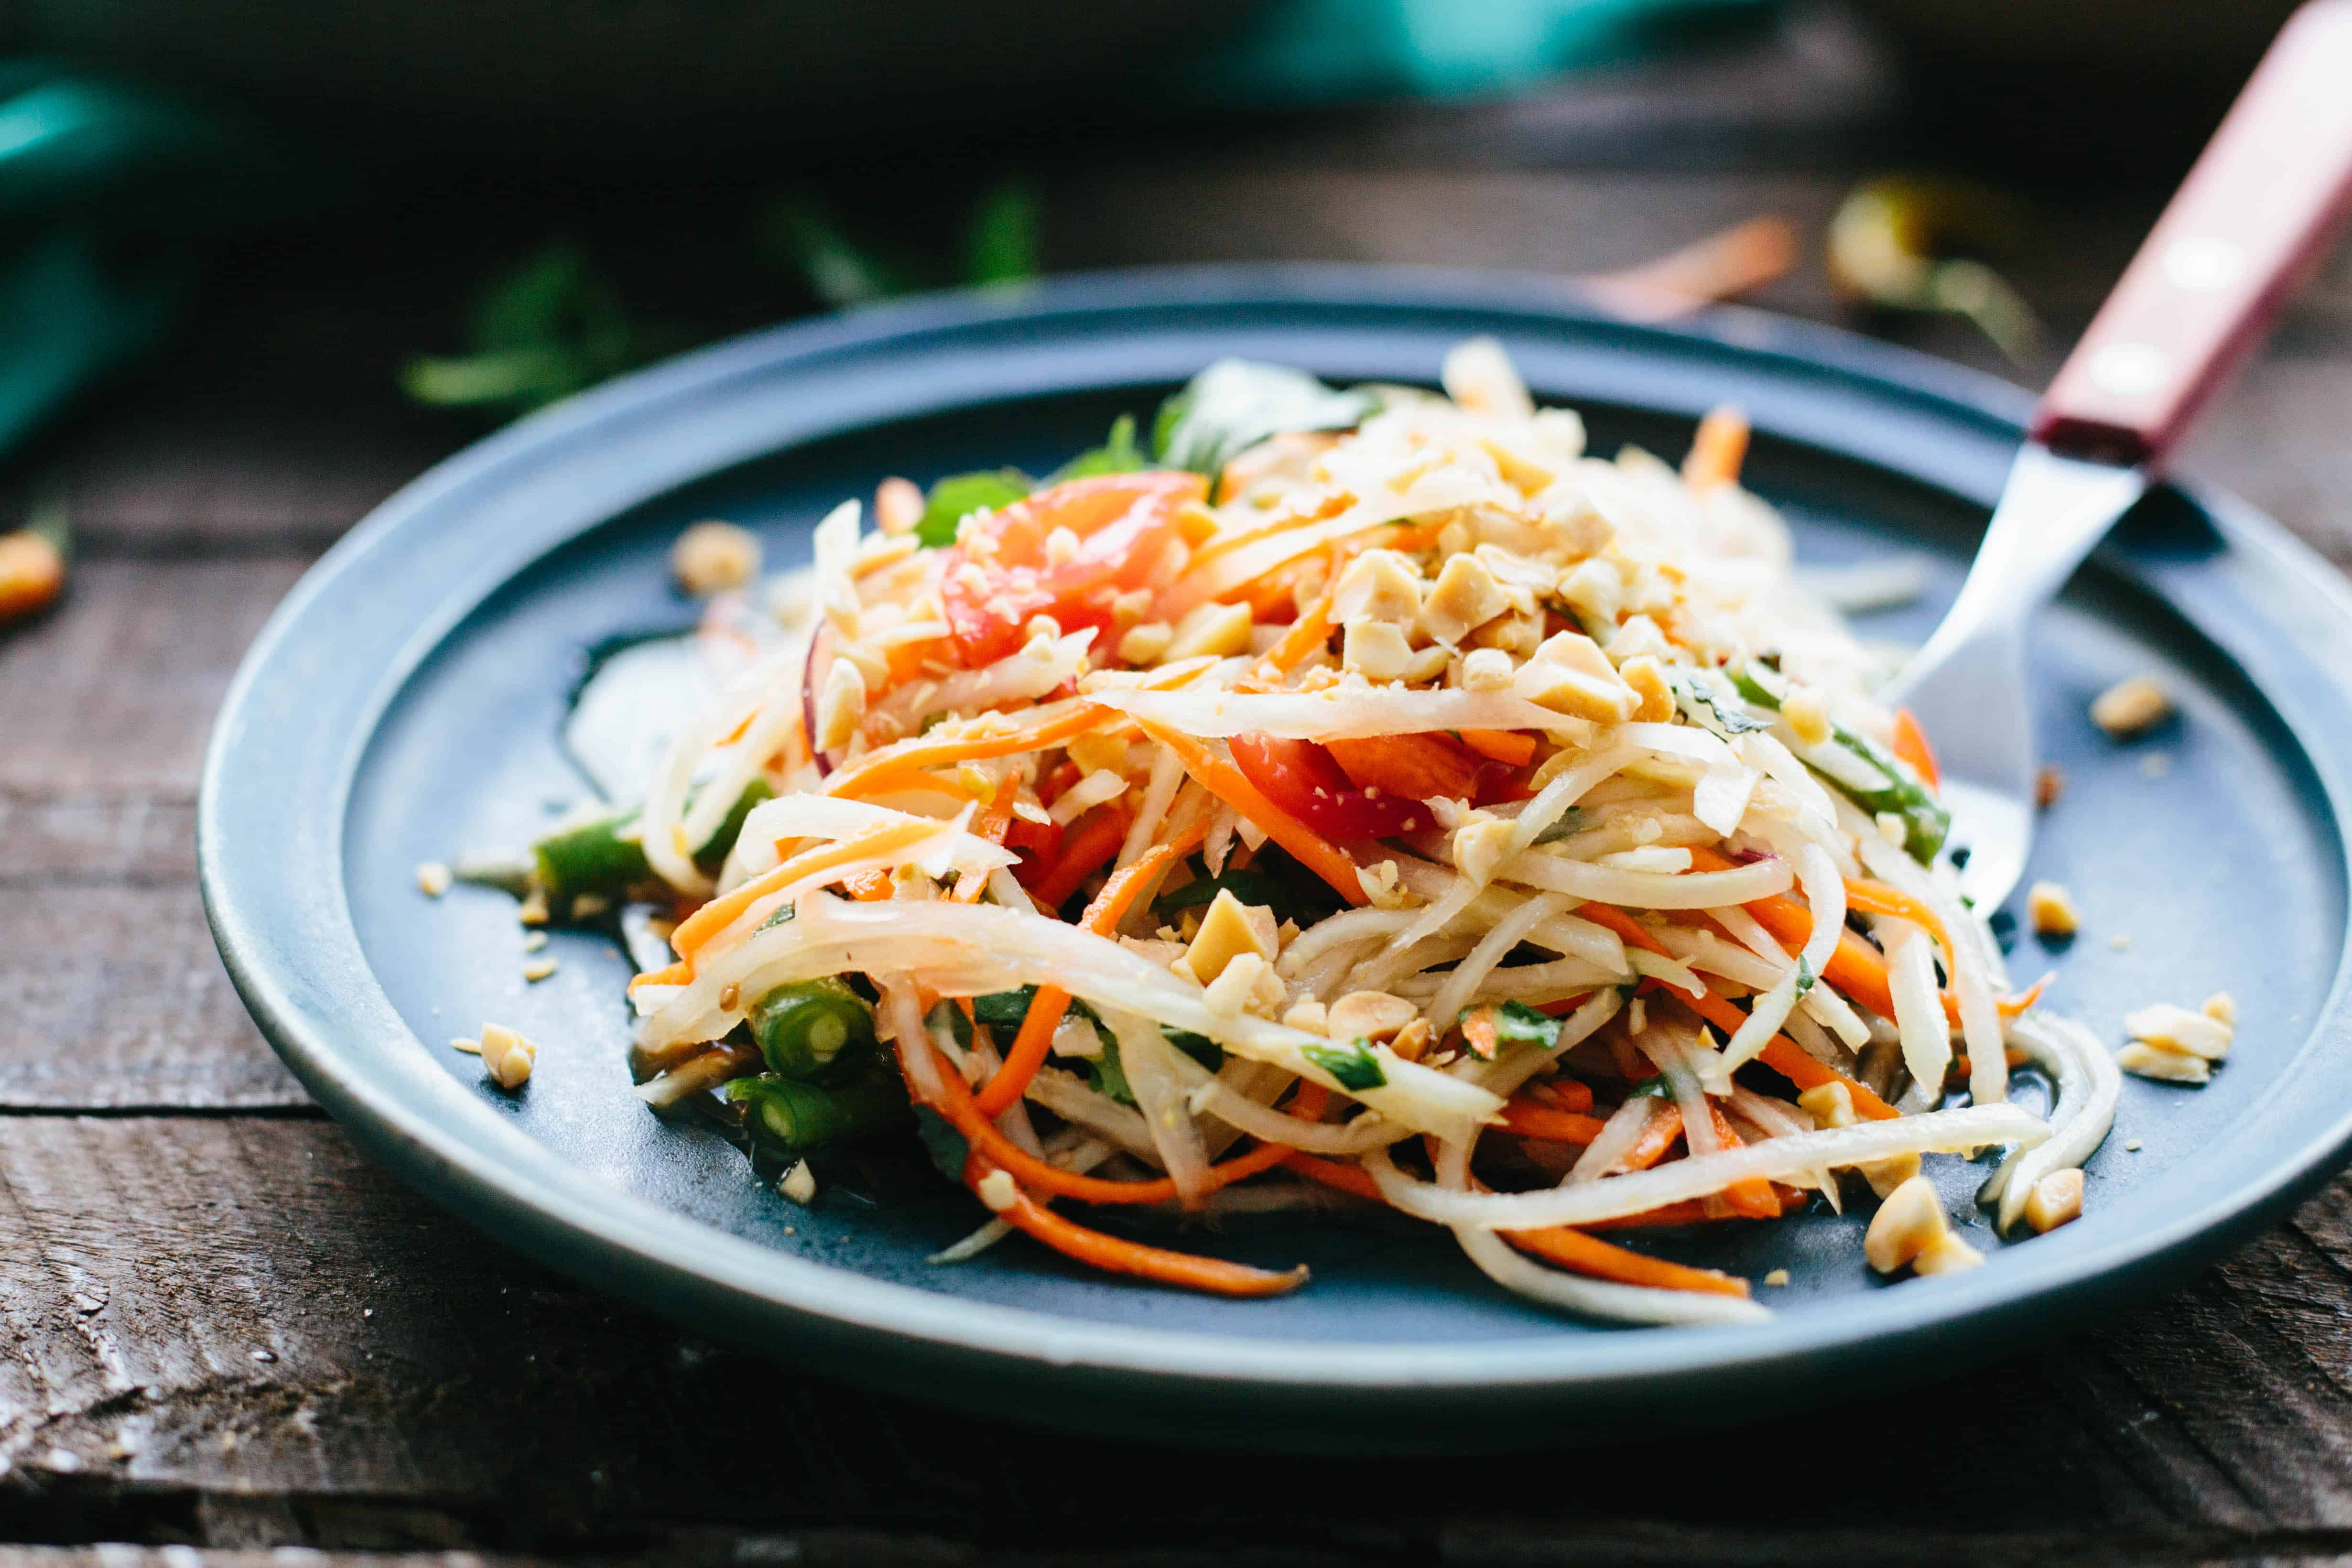 This Thai Green Papaya Salad or Som Tam is a simple healthy and authentic recipe that's packed with flavor. #easy #recipe #healthy #thai #papaya #salad | ColeyCooks.